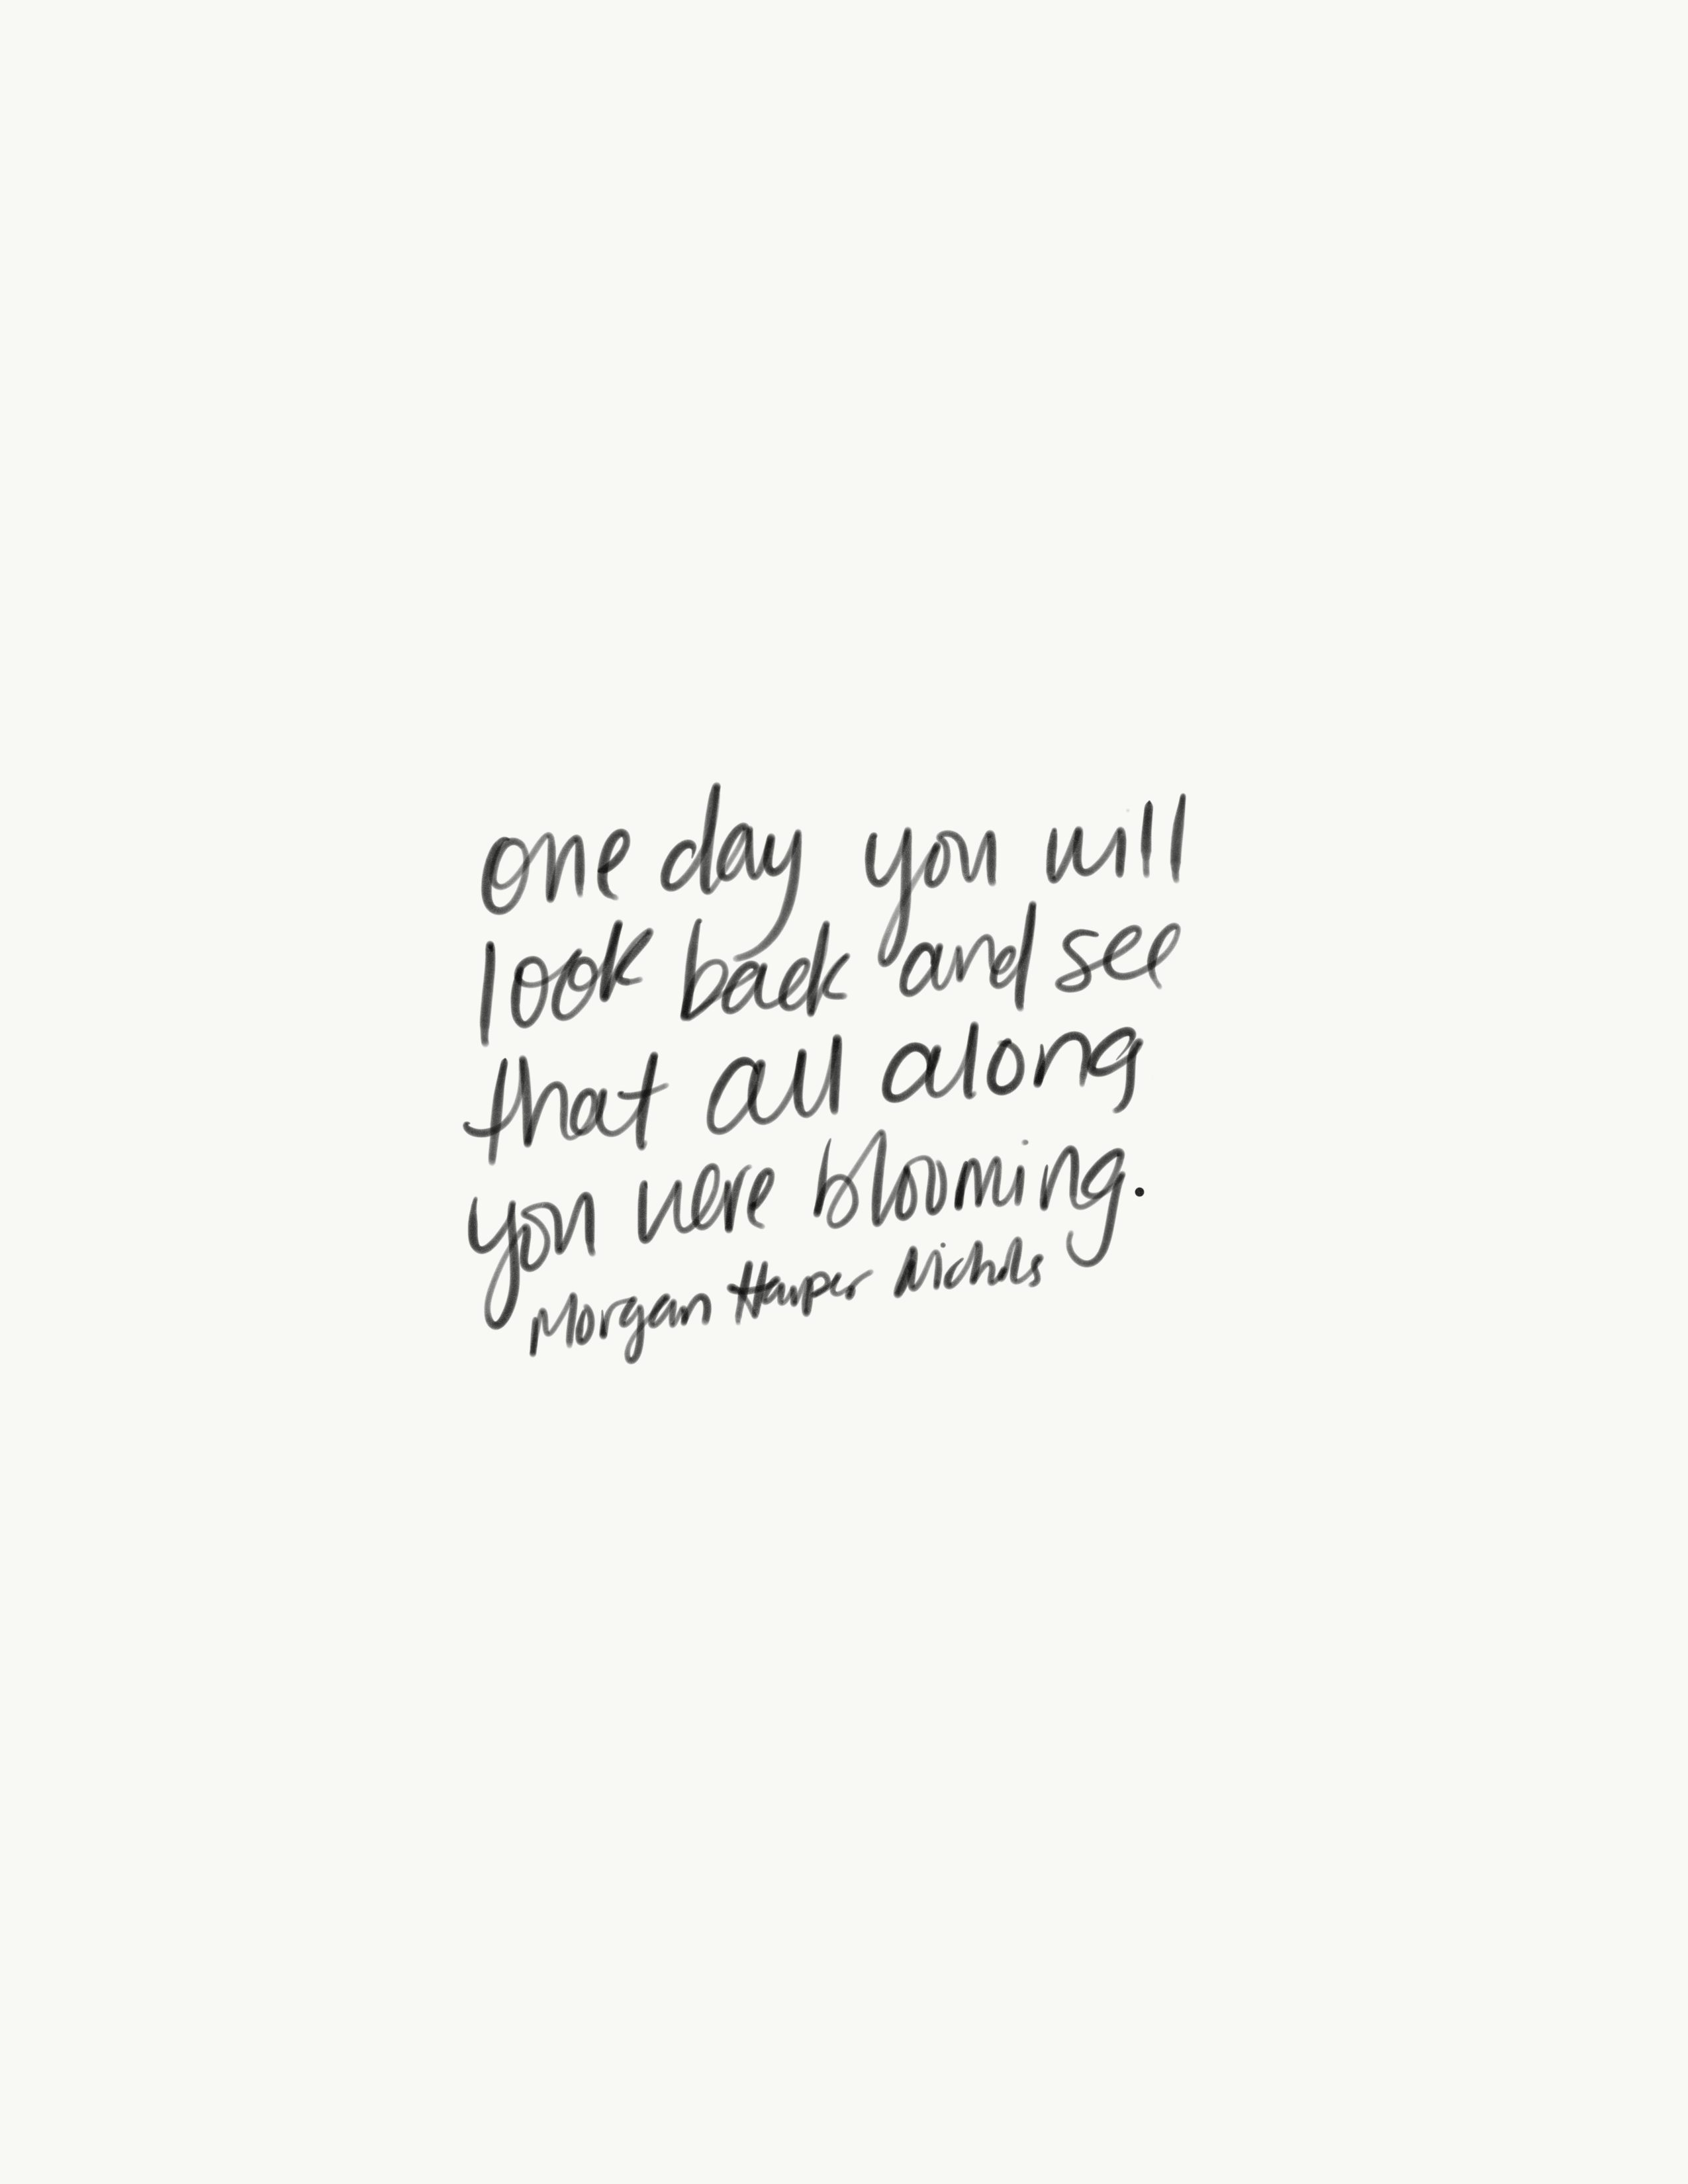 Quotes New Years Quotes Yoga Quotes End Of